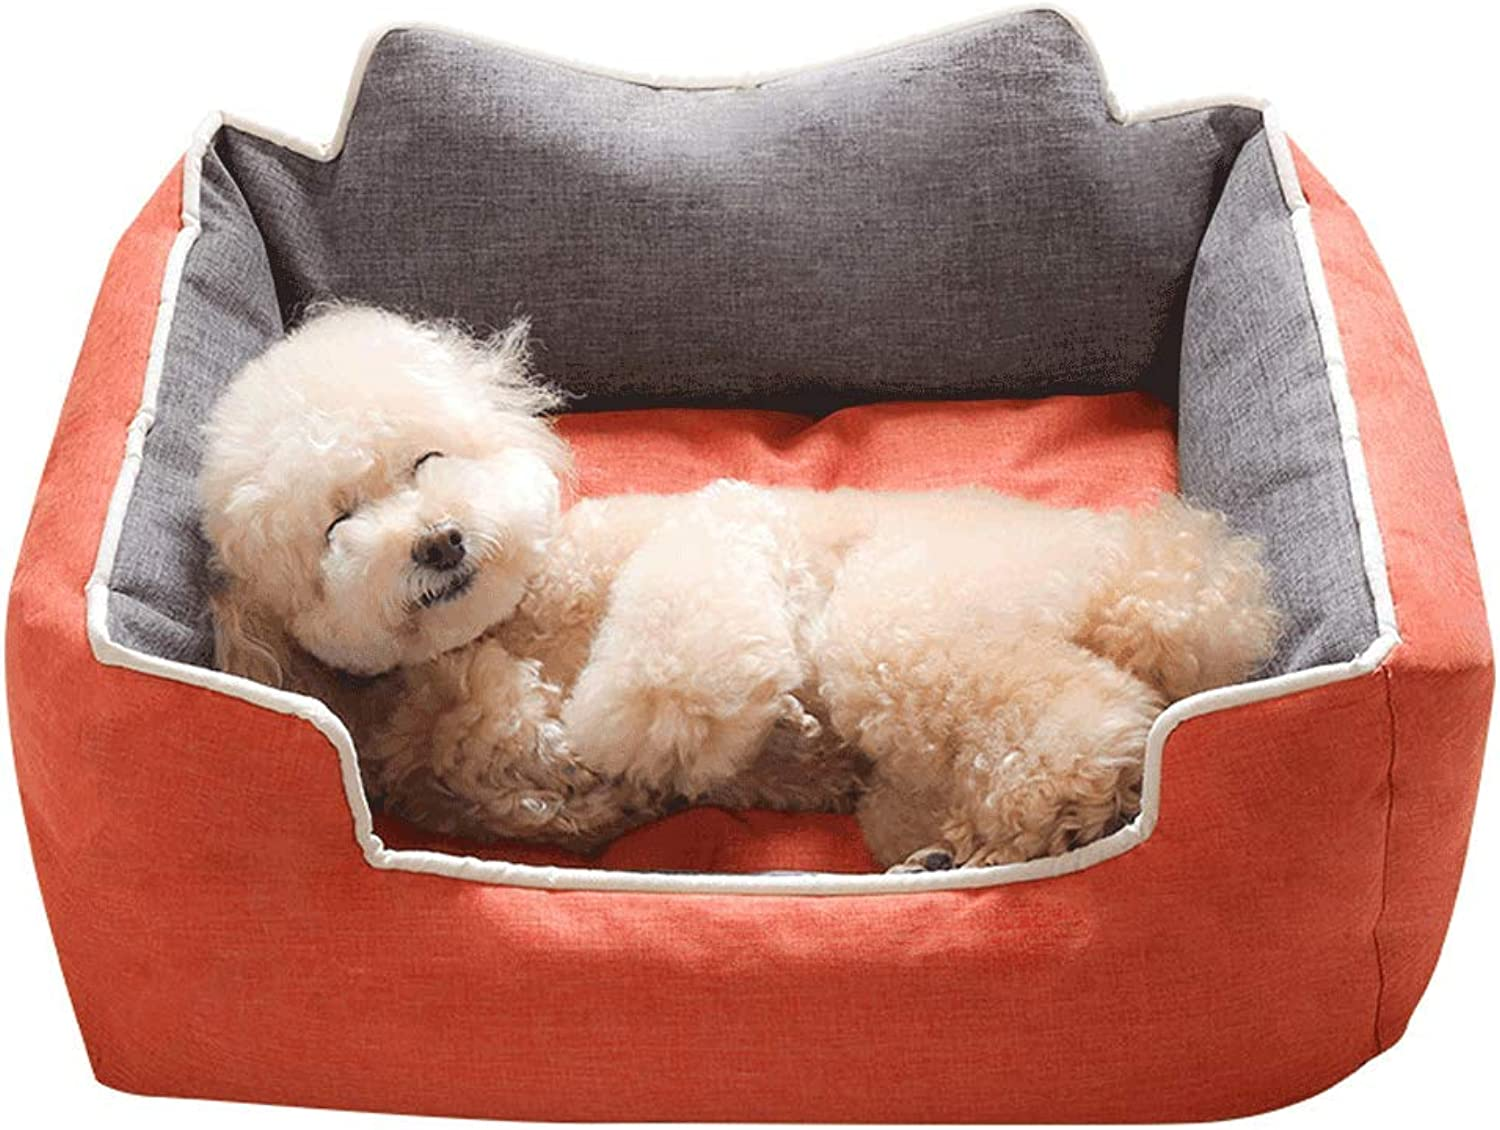 Dog Bed,Kennel Removable and Washable Teddy Dog Than Bear Small Dog golden Retriever Medium Pet Supplies Four Seasons Universal (color   orange, Size   S)